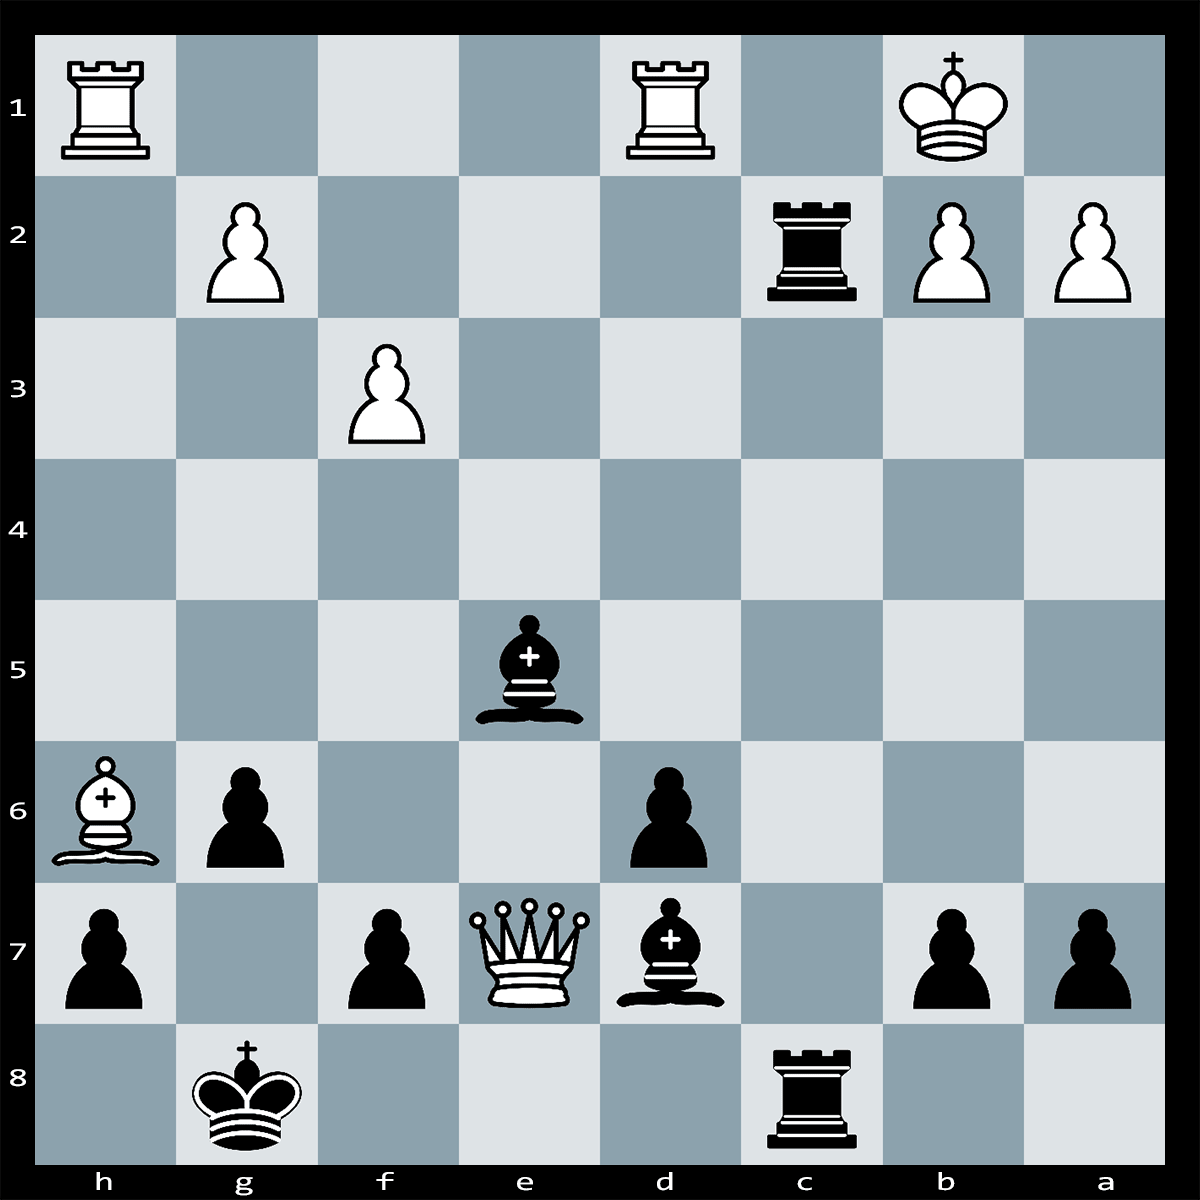 Mate in 4 moves, Black to play   Chess Puzzle #89